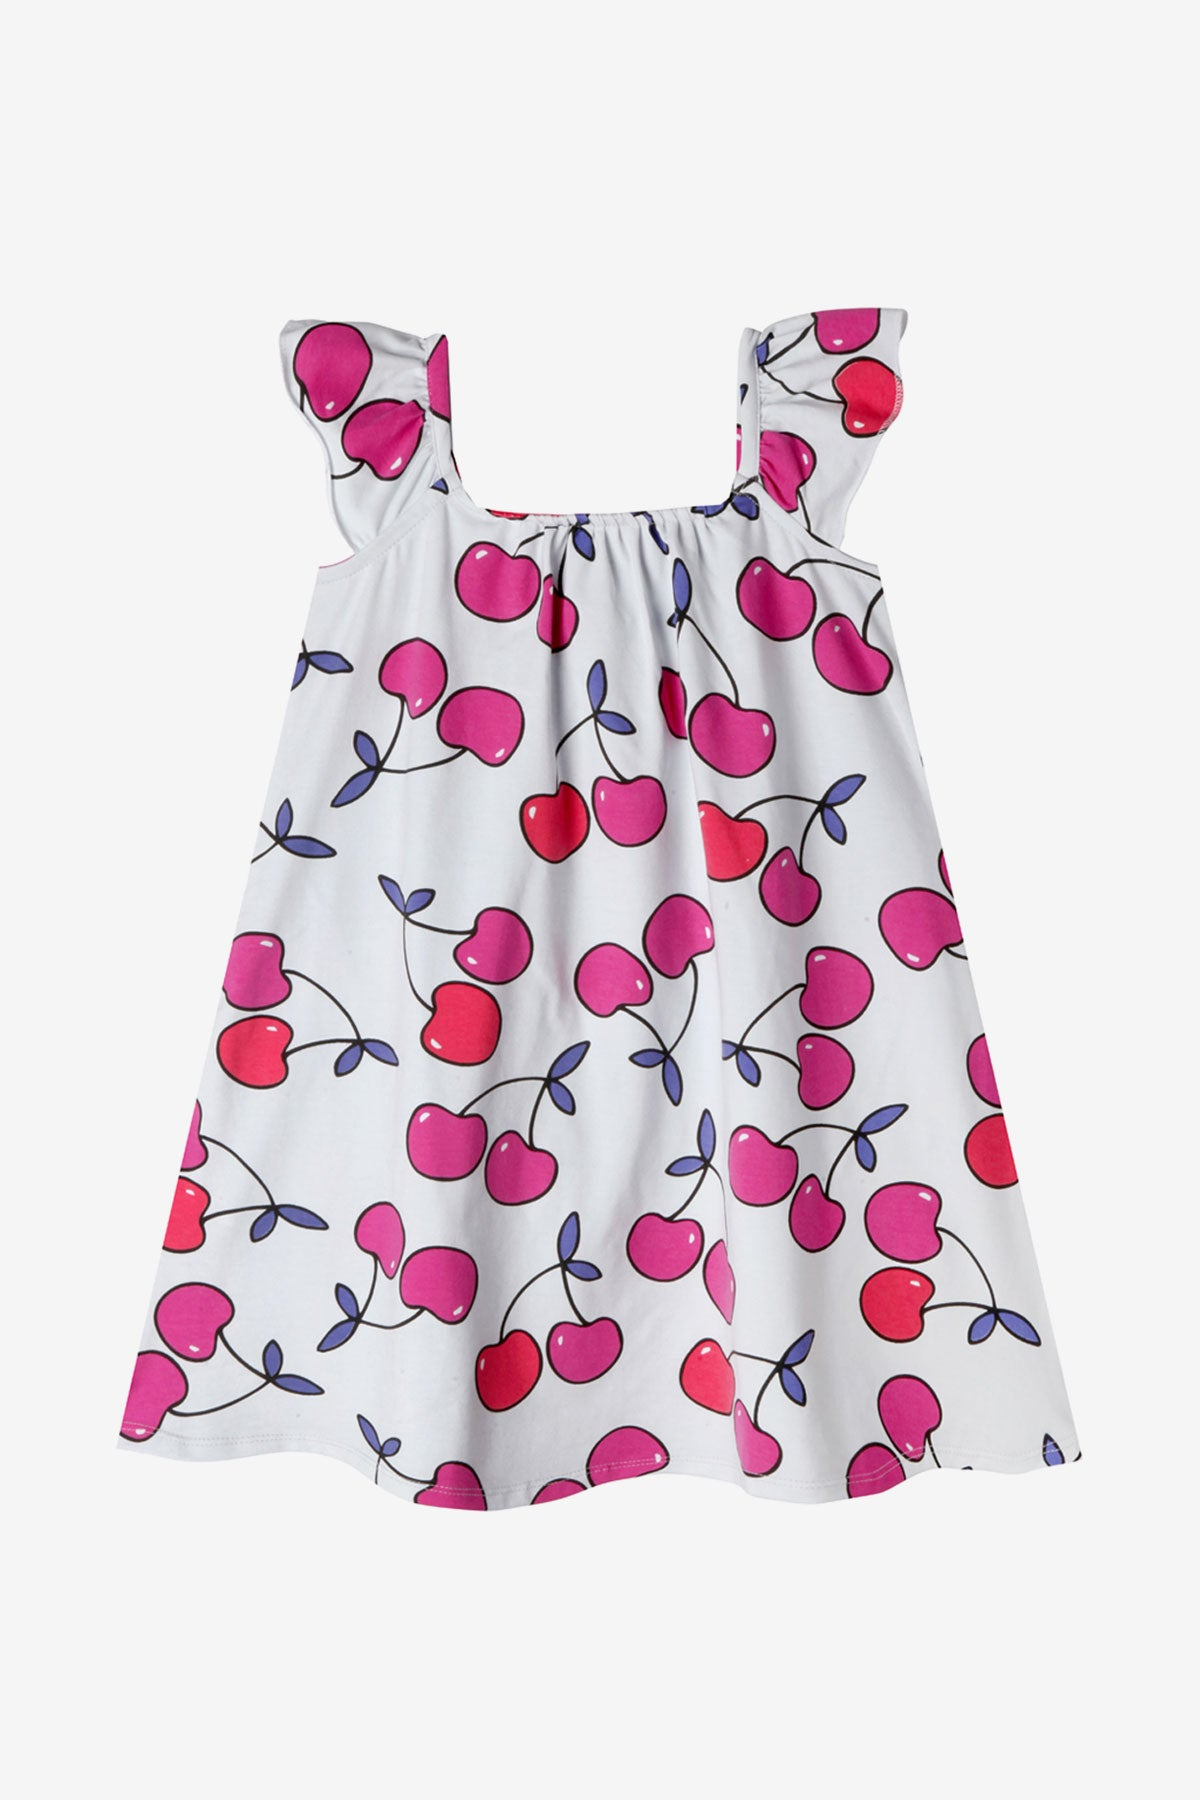 Art & Eden Lana Cherries Dress